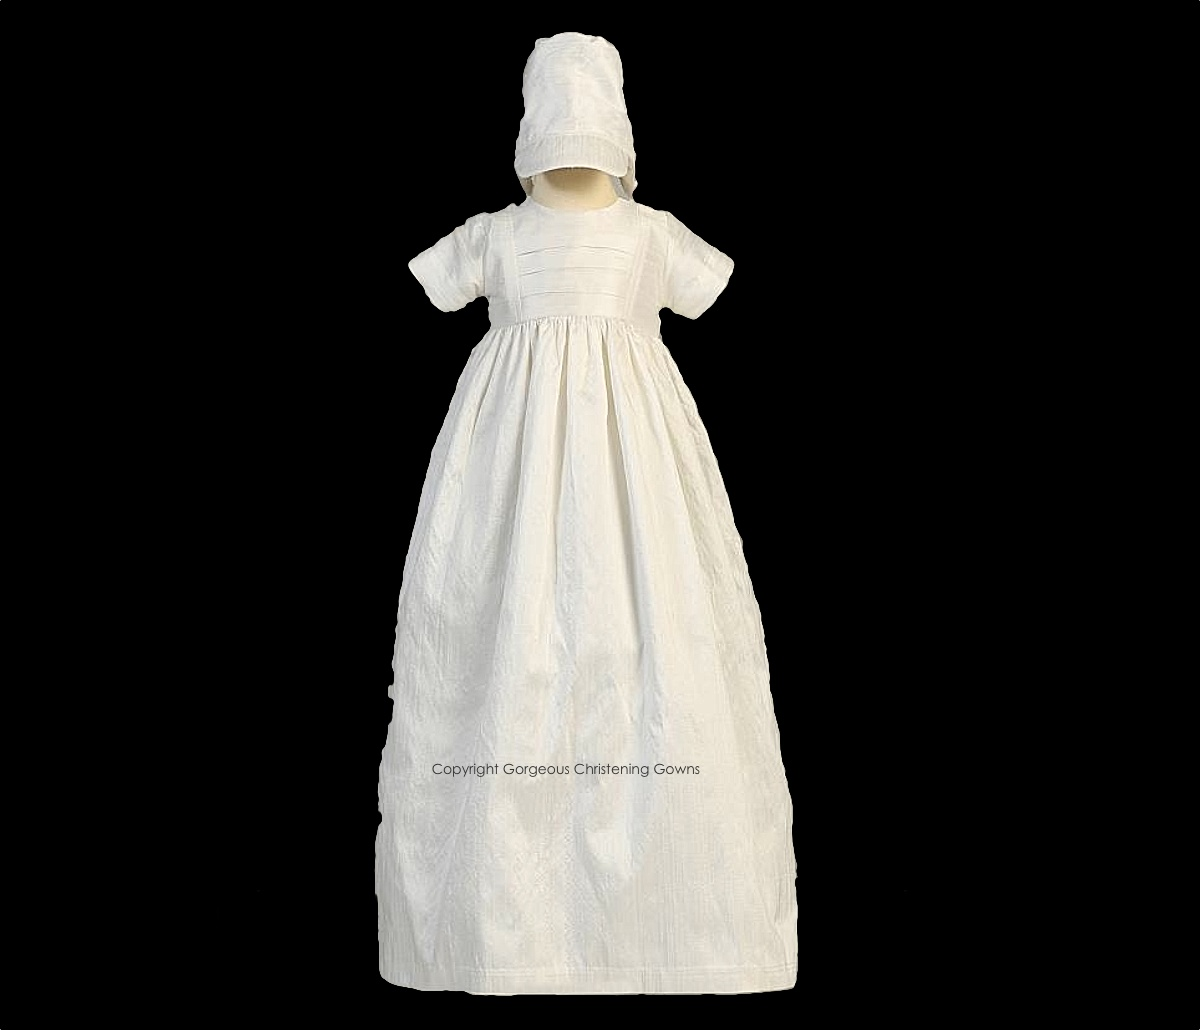 Girls Christening Gowns   Girls Baptism Gowns   Melbourne Victoria ...